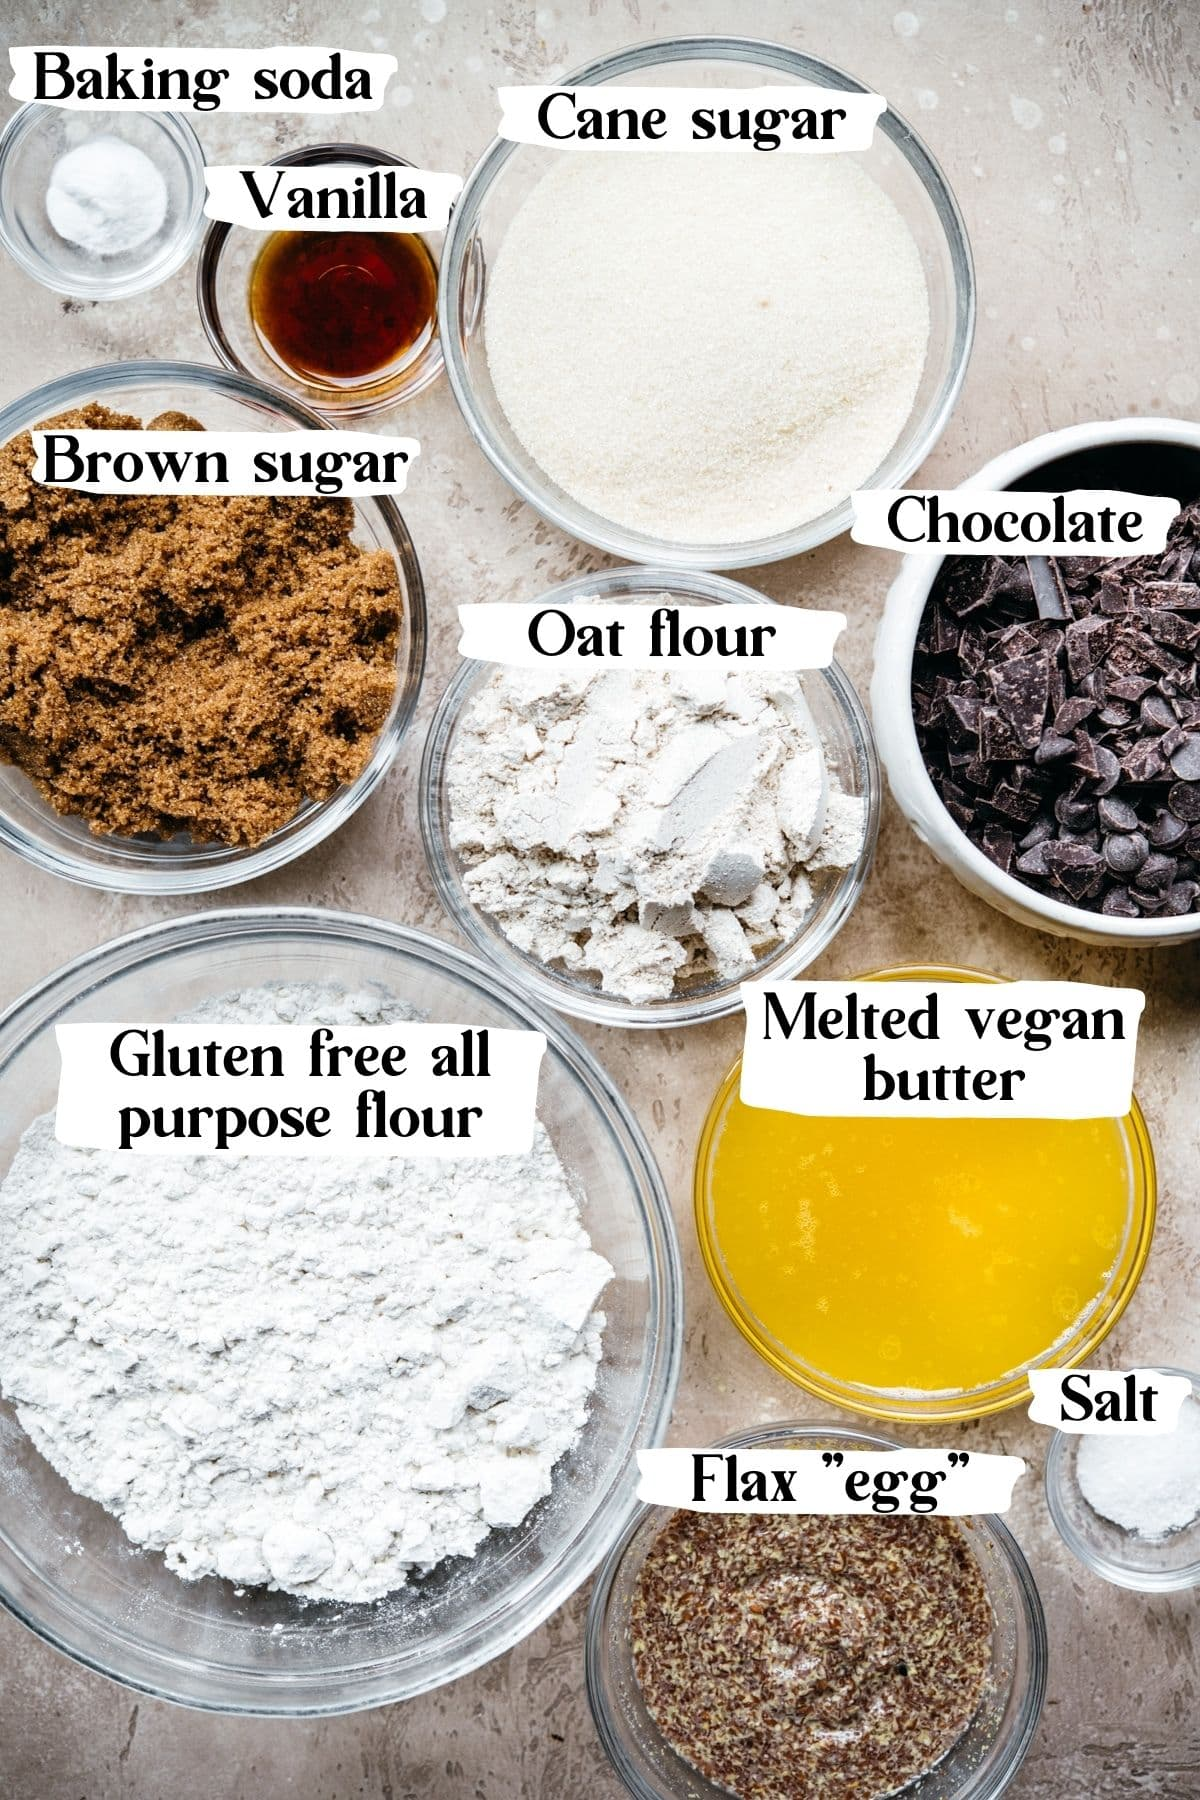 overhead view of ingredients in glass bowls to make vegan chocolate chip cookies with text labels on photo.